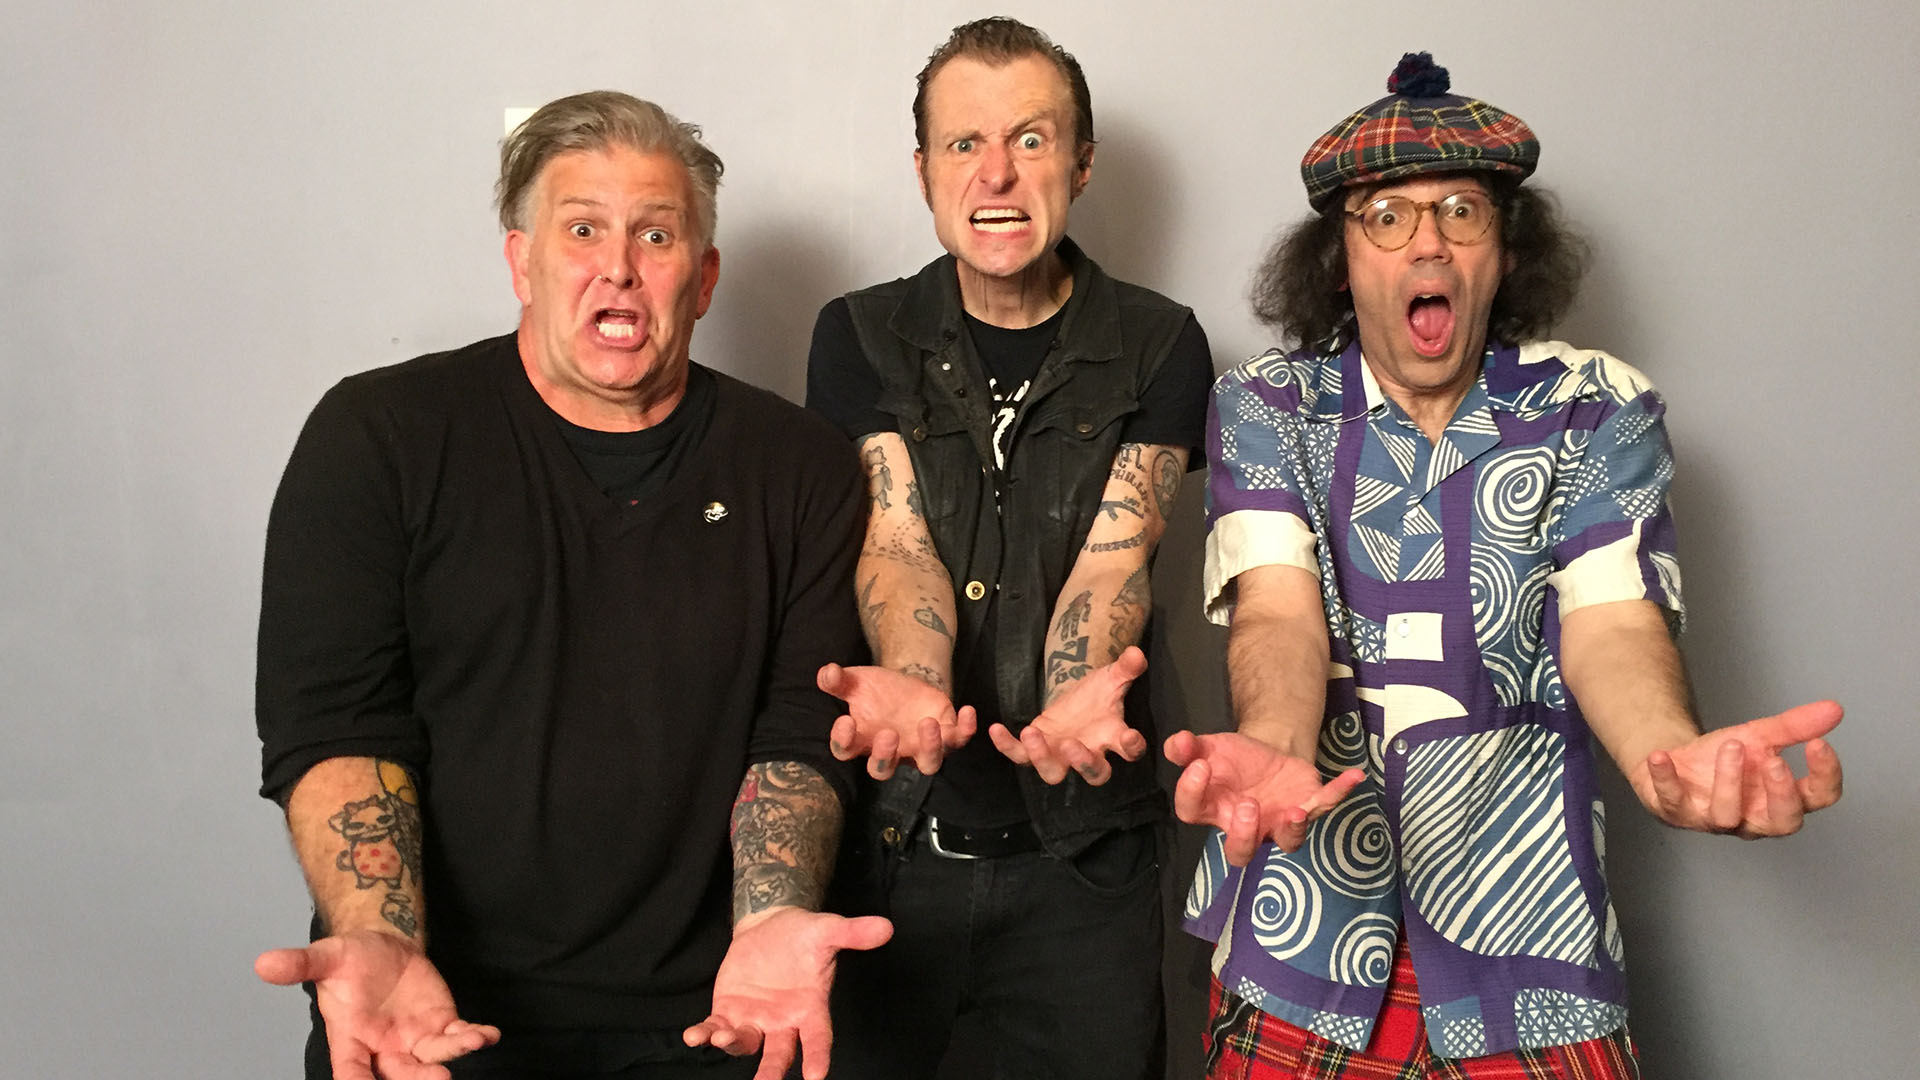 Leftover Crack, Nardwuar ! The Venue, Vancouver BC Canada!